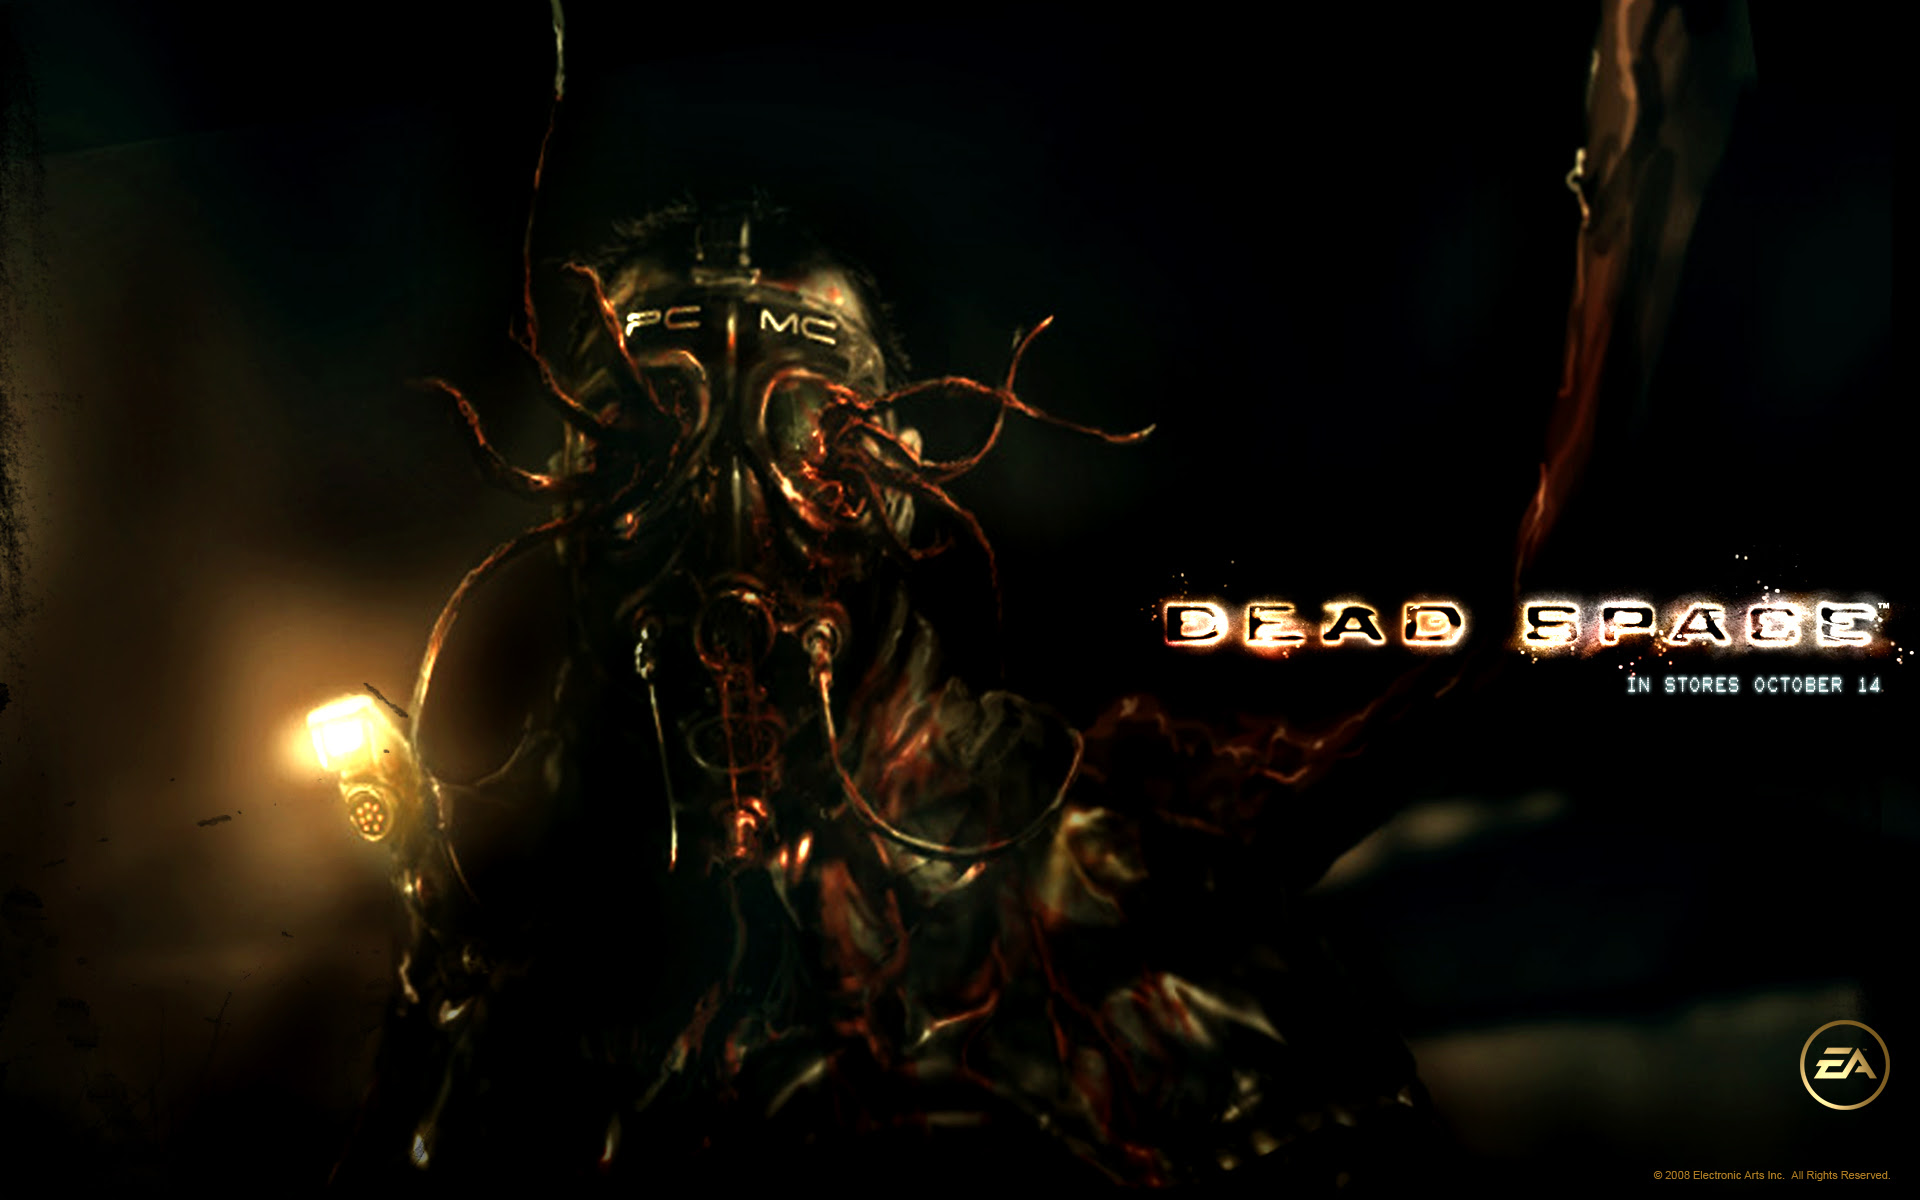 Dead Space Vs Halo